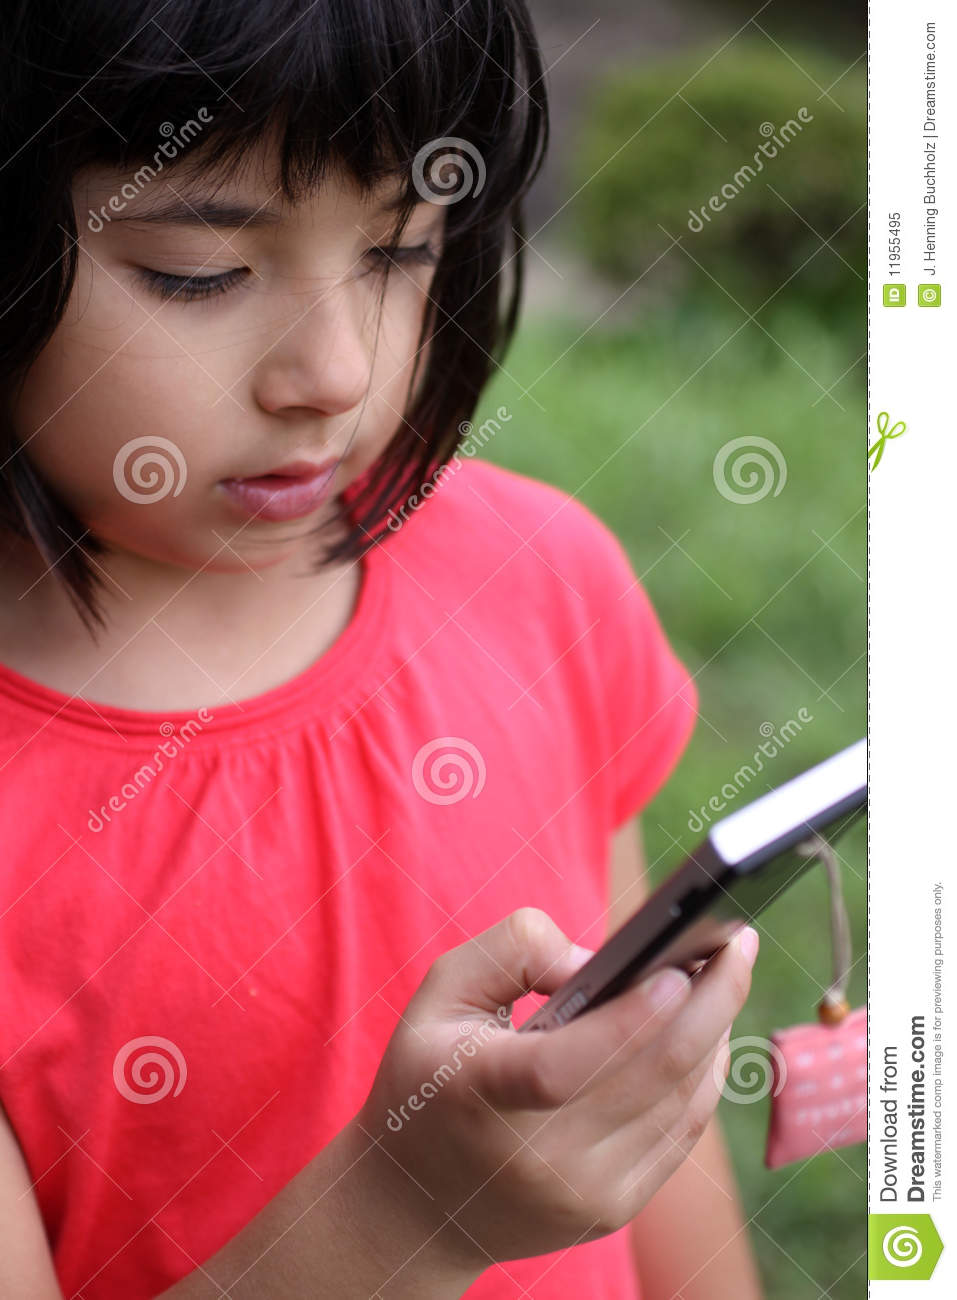 images of Young Japanese Russian Girl Playing With Cellphone Royalty ...